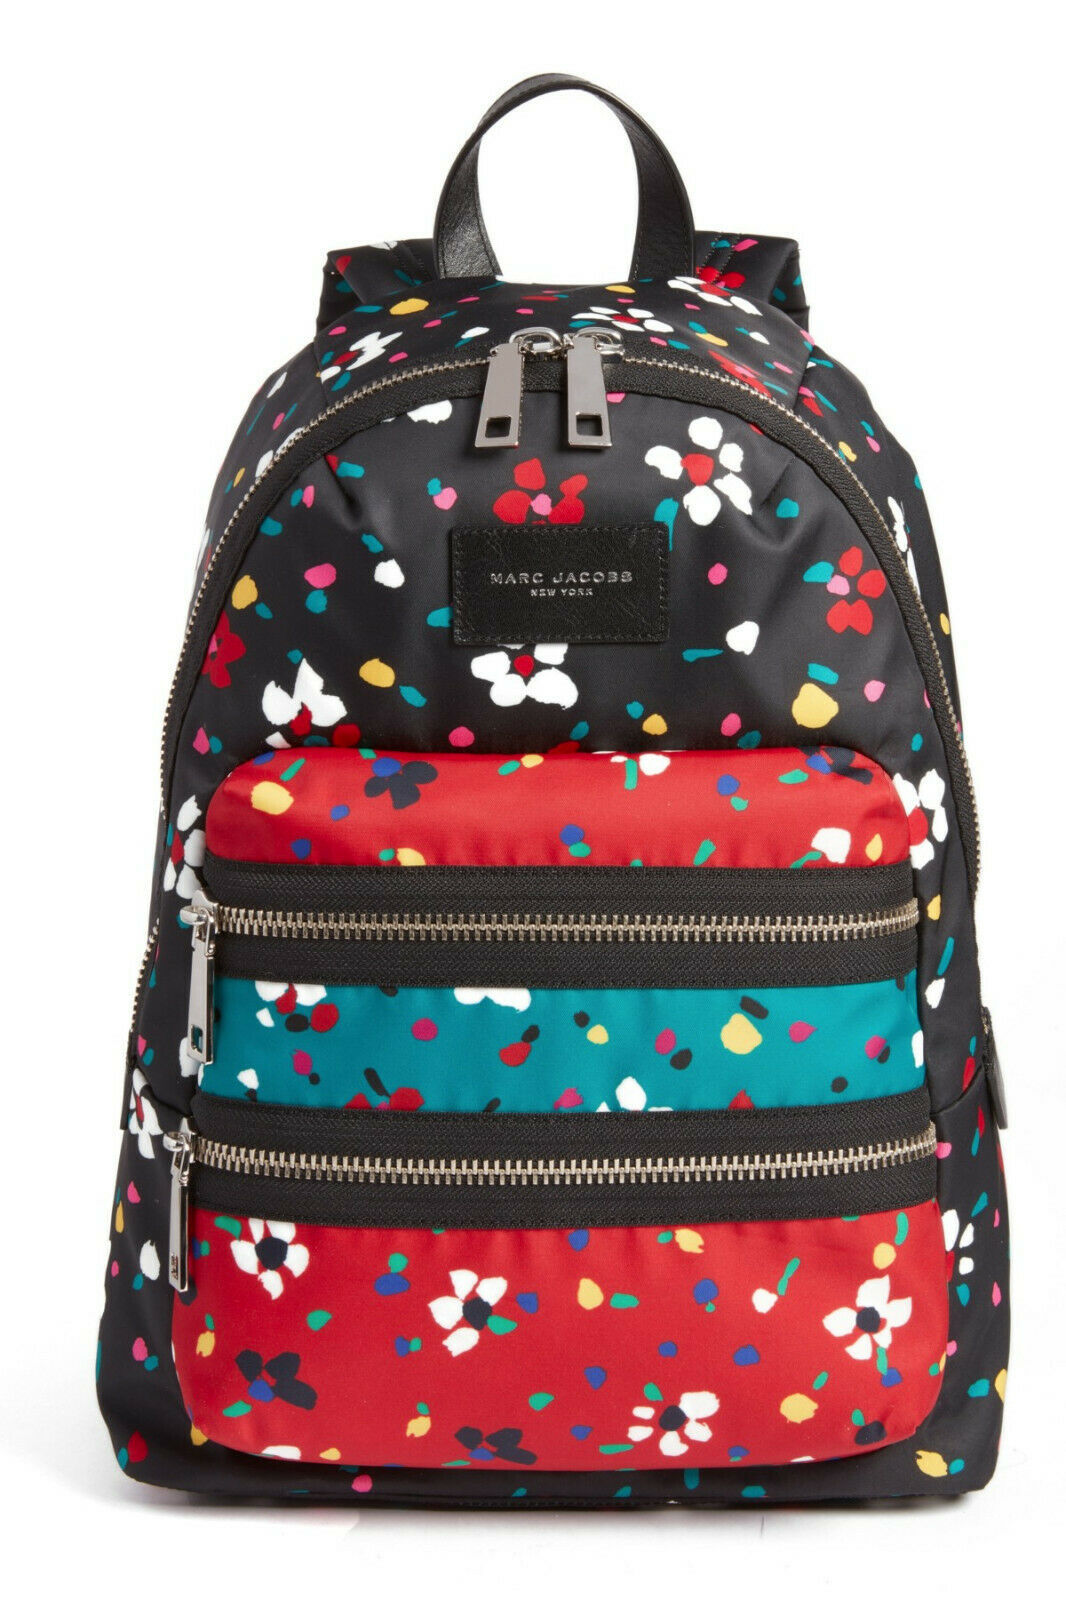 Primary image for NWT Marc Jacobs Floral Biker Backpack Zip Nylon BLACK Multicolor $270 AUTHENTIC!